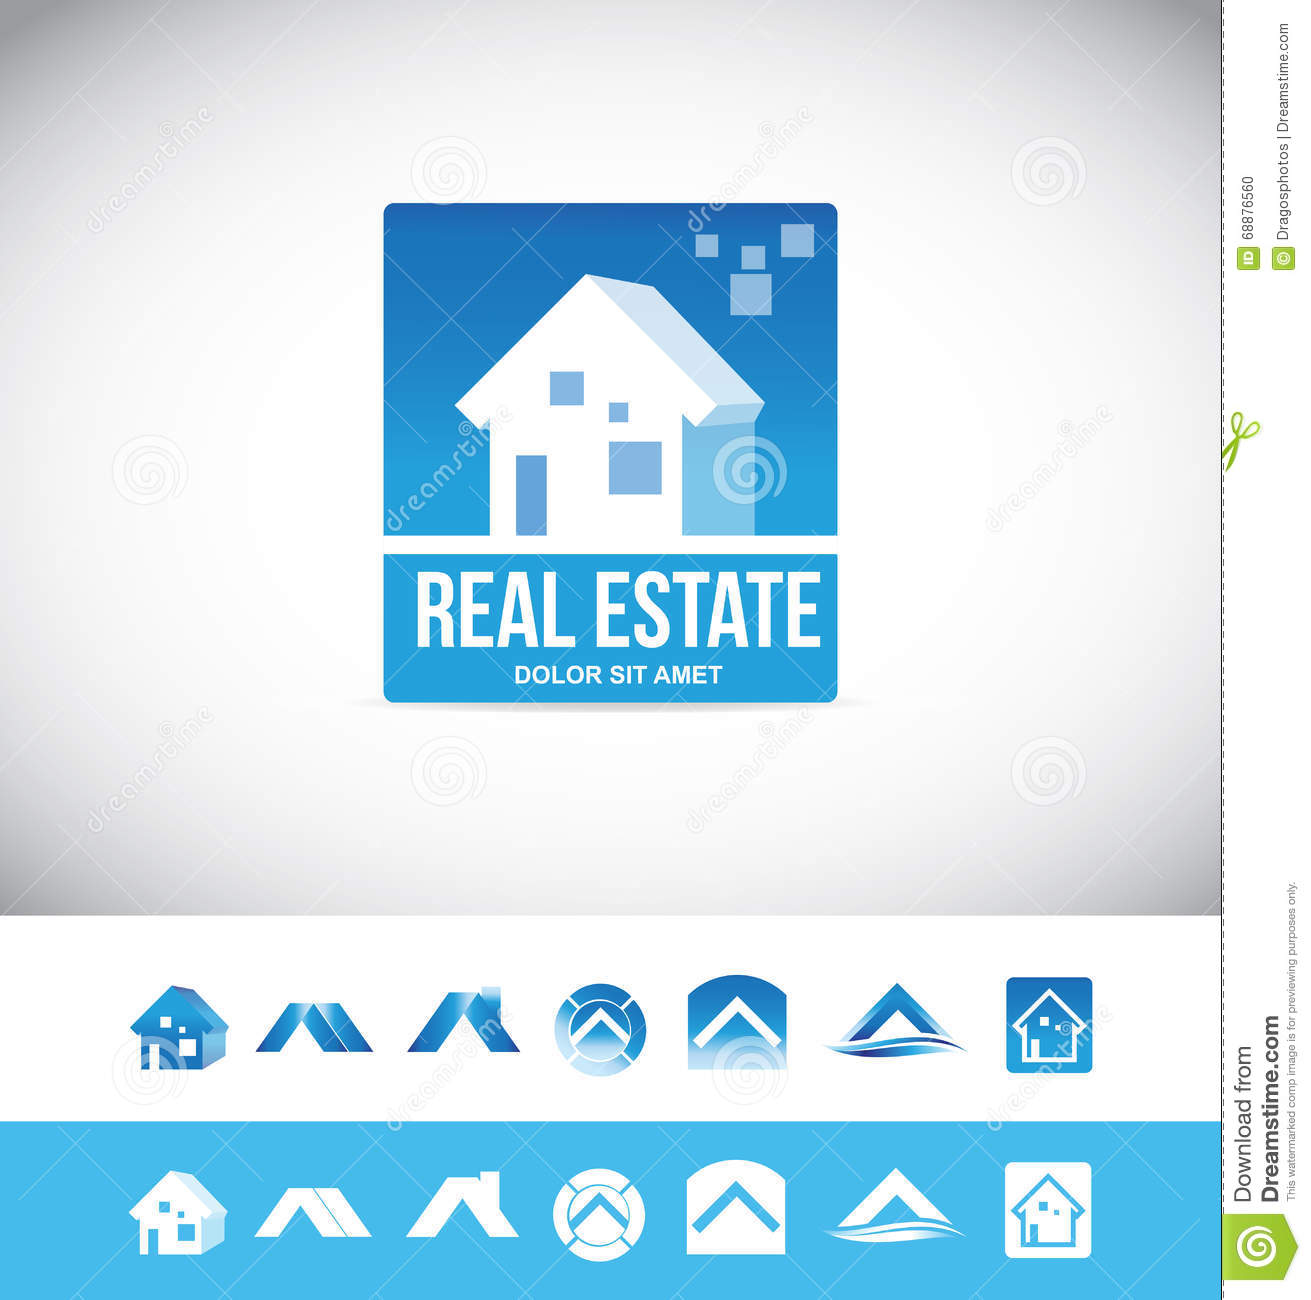 the dynamics of residential real estate Conditions & trends of the san francisco bay area residential real estate  market  estate market prices, conditions and trends, supply and demand  dynamics,.